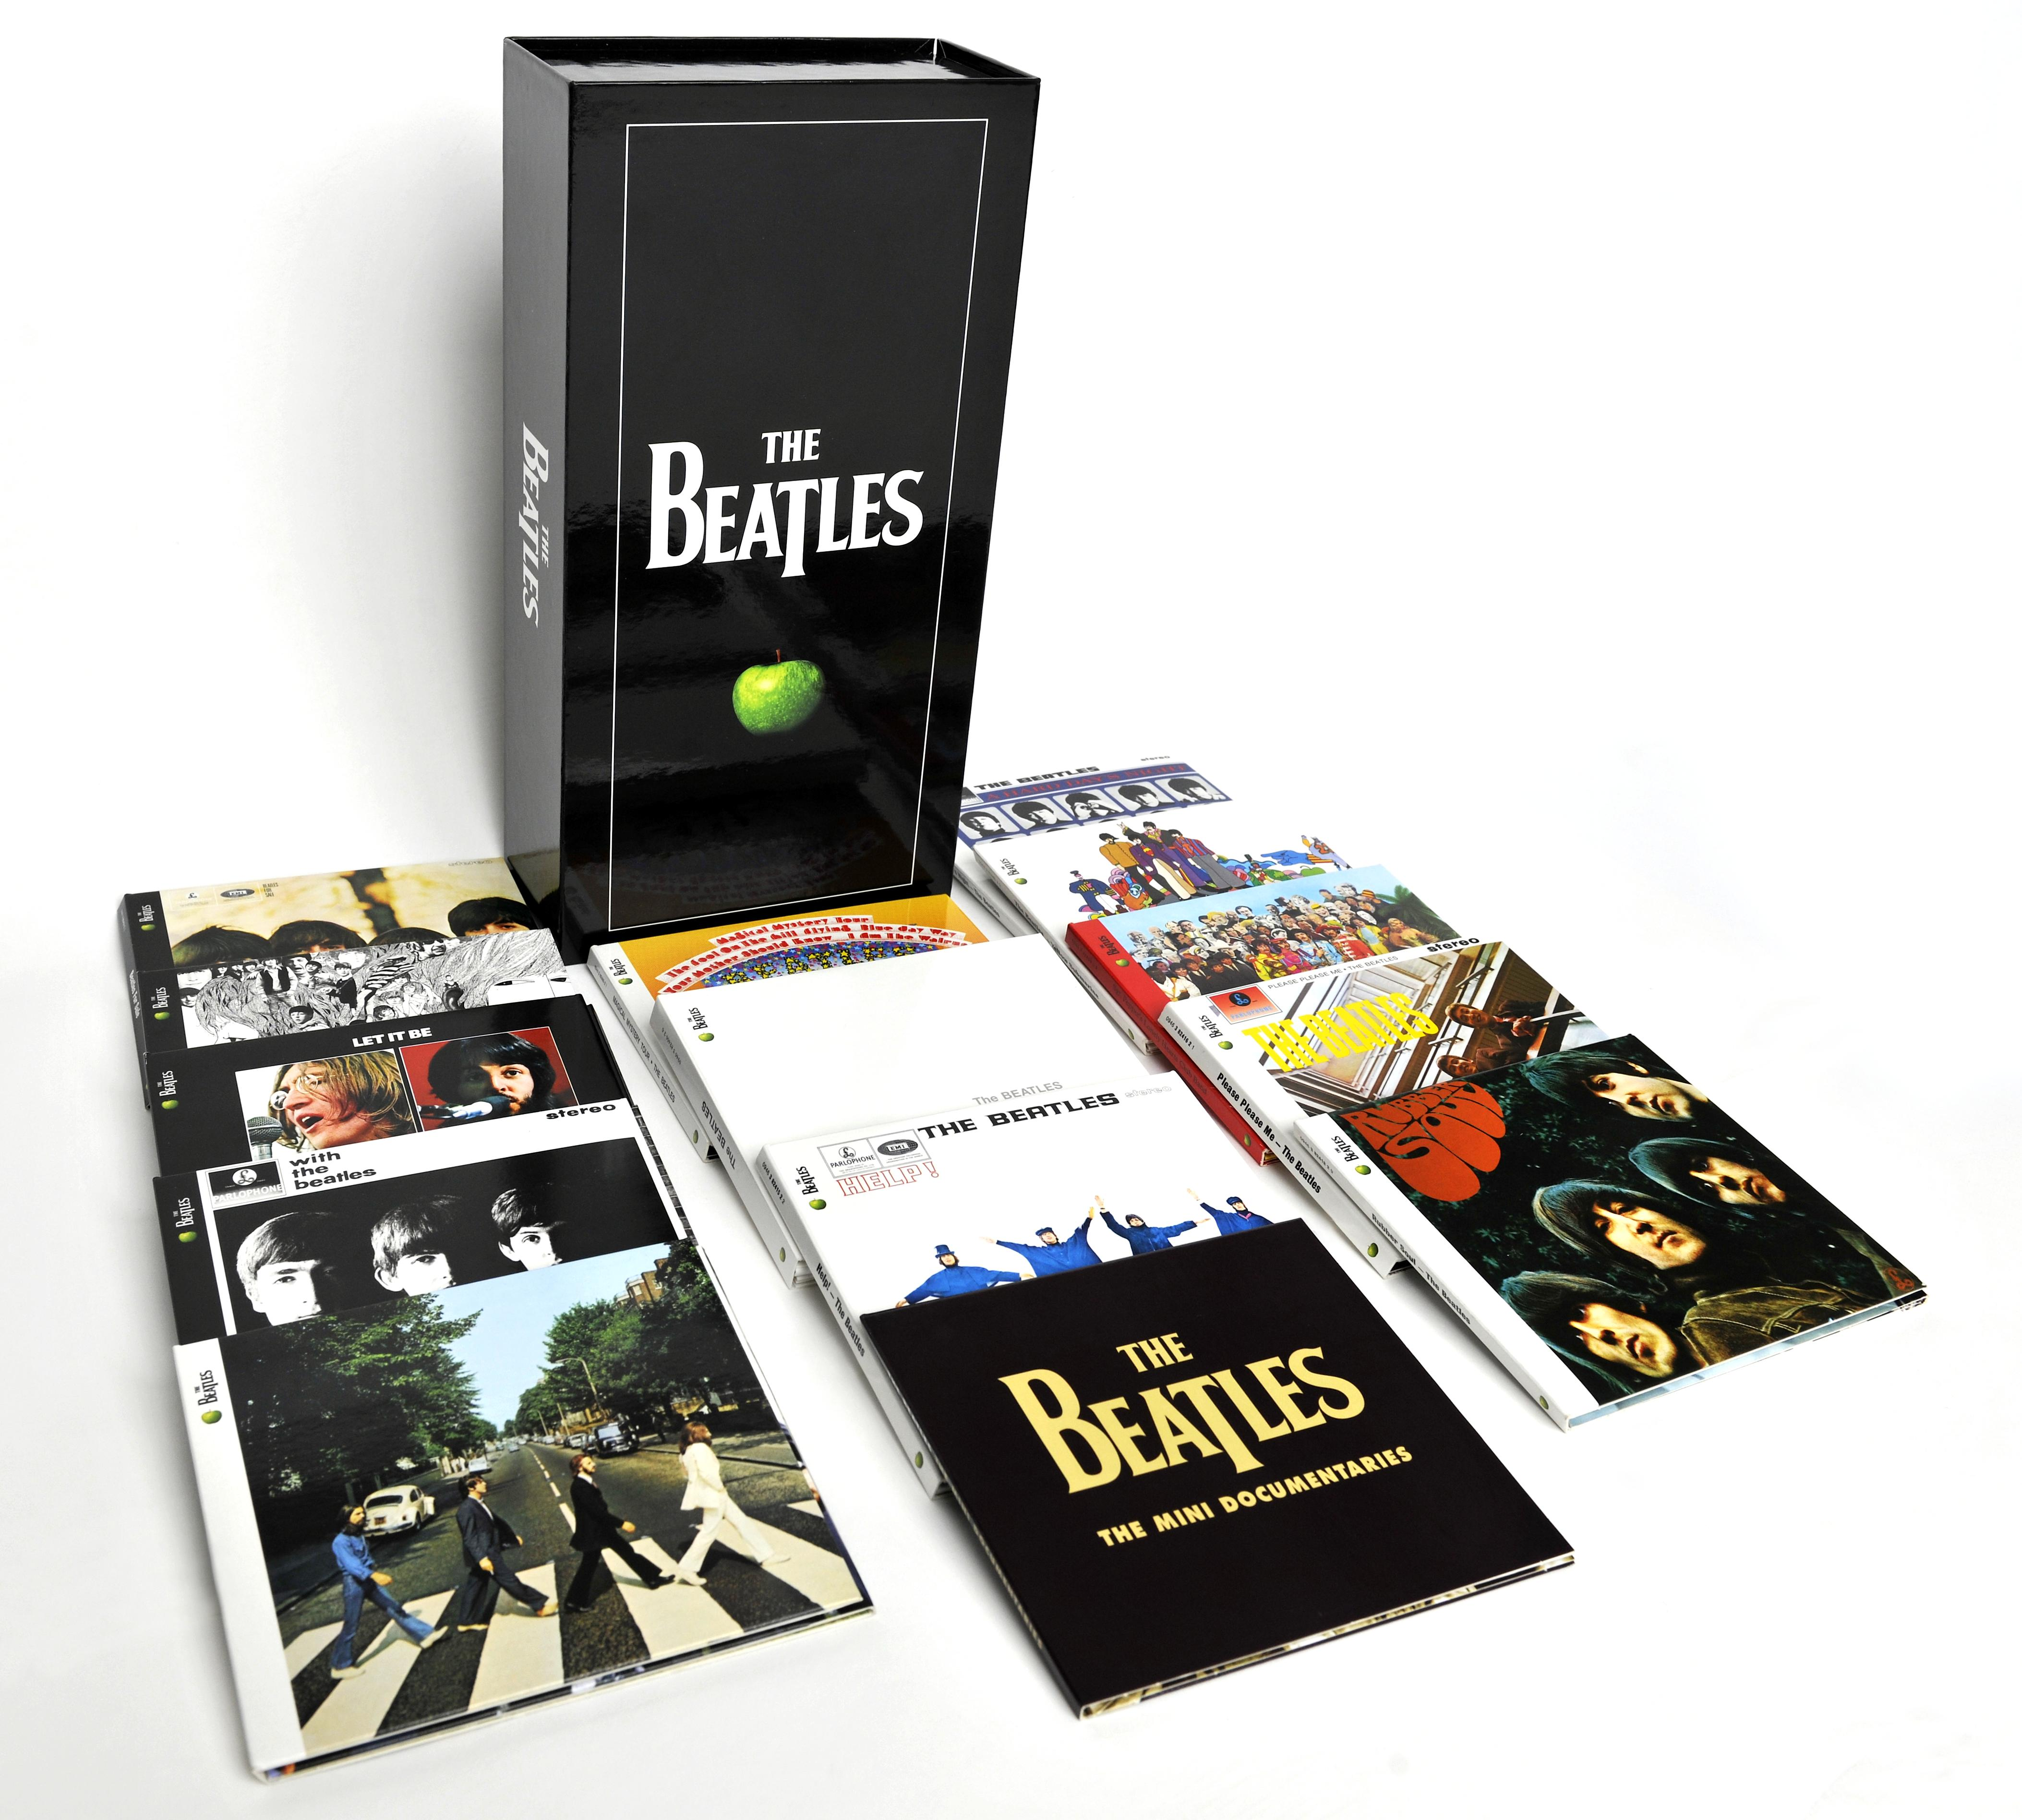 thebeatles-stereobox-productshot3.jpg